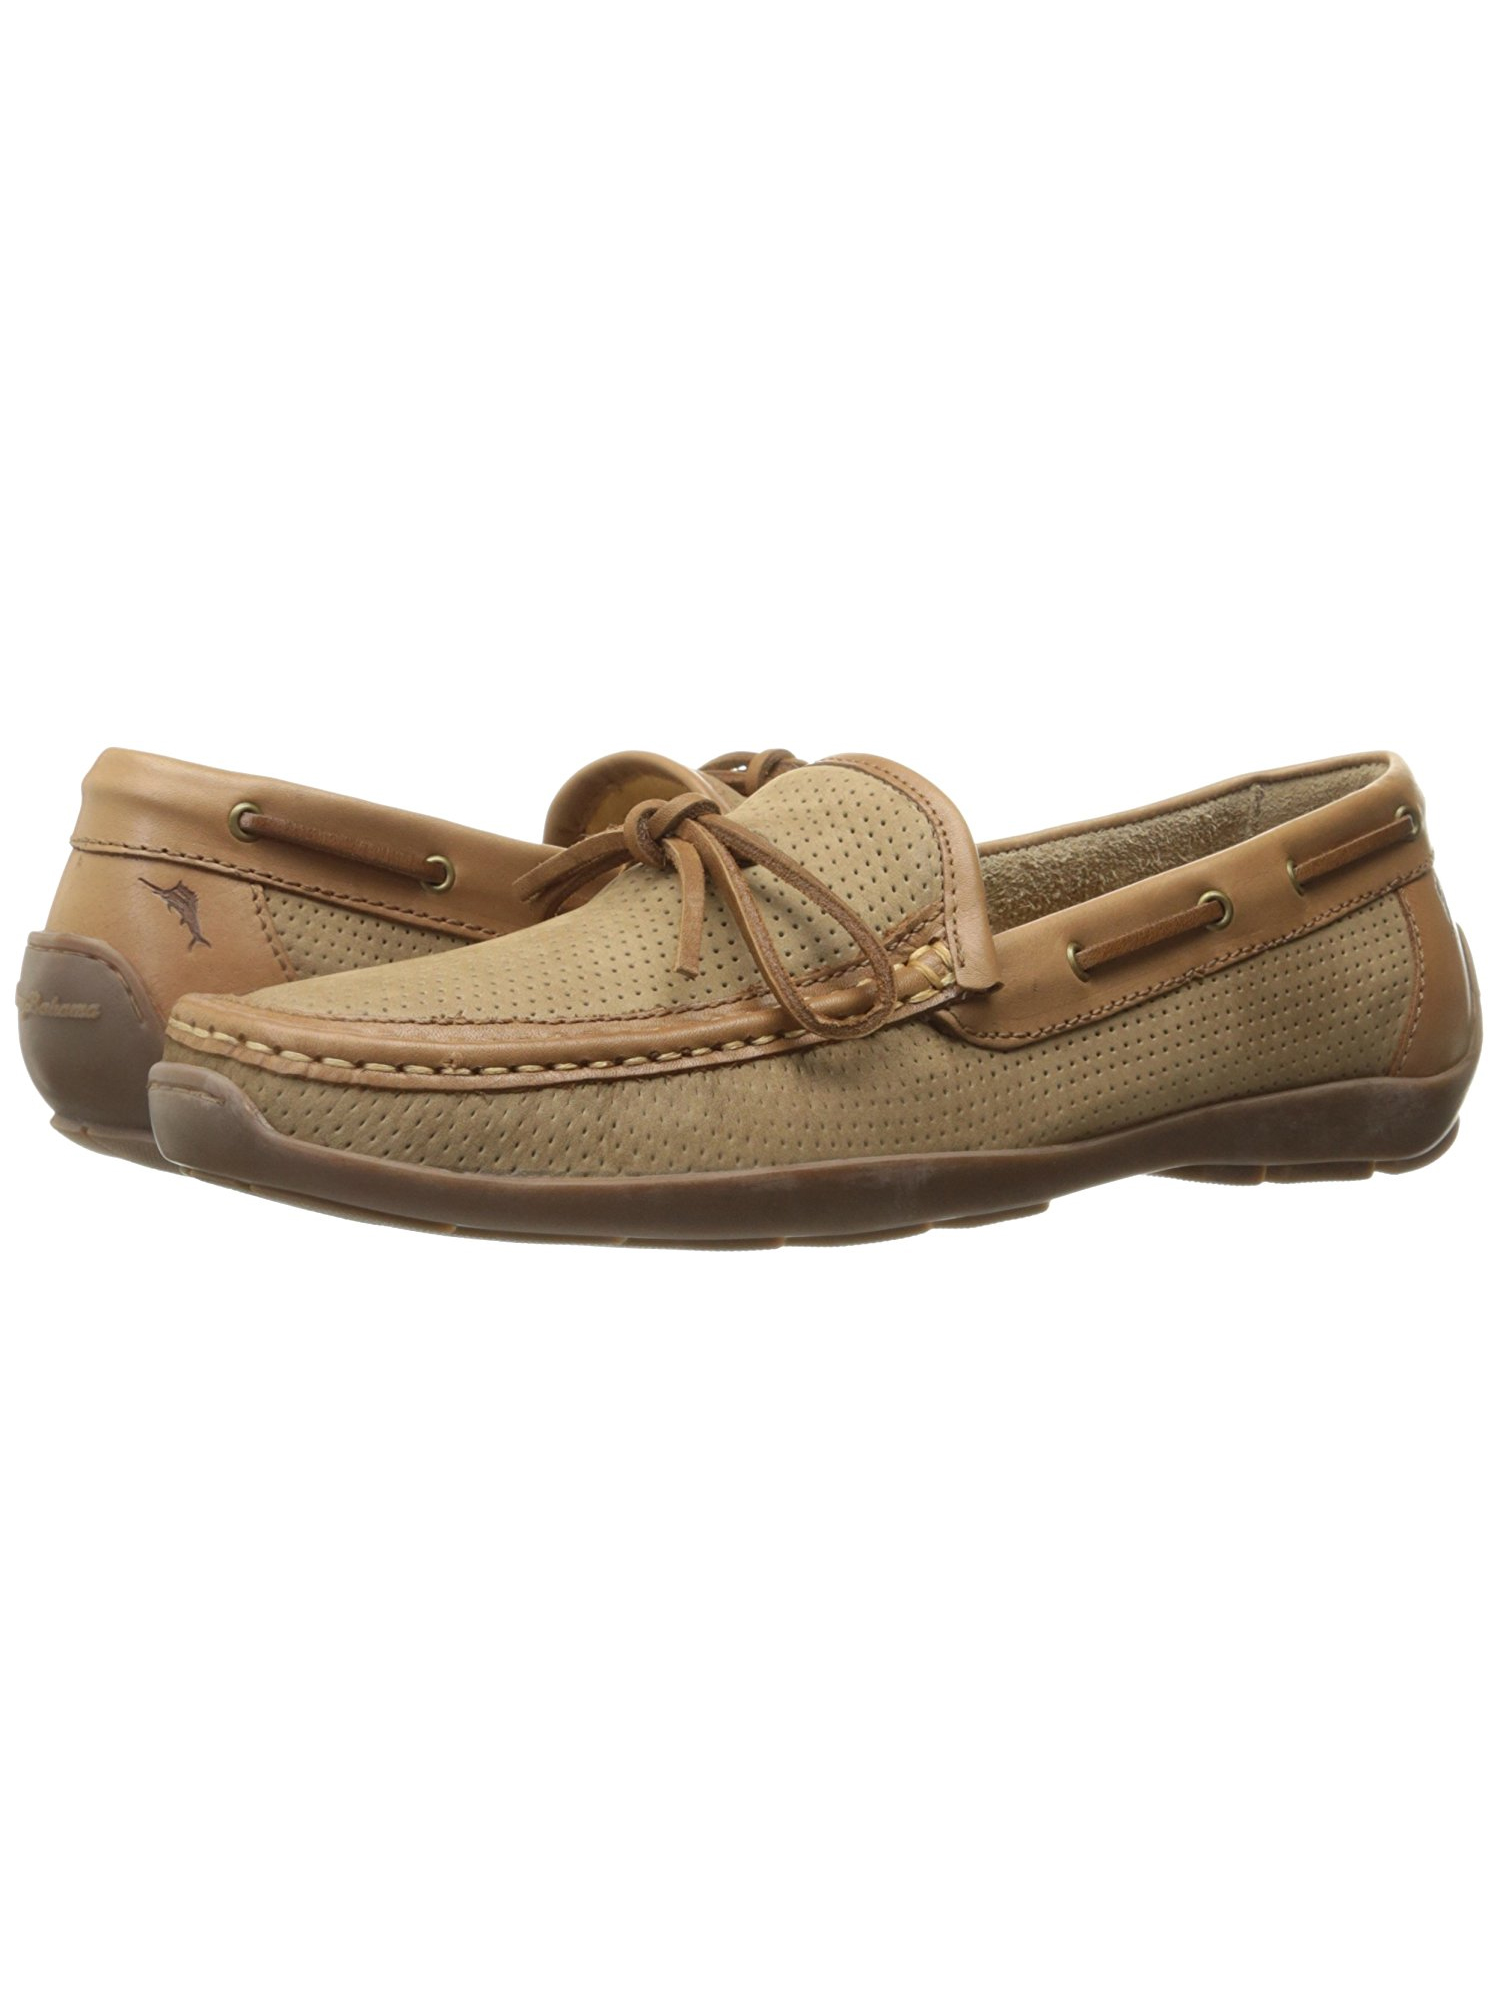 Tommy Bahama Mens Oden Perforated Boat Shoe (Sand, 14) by